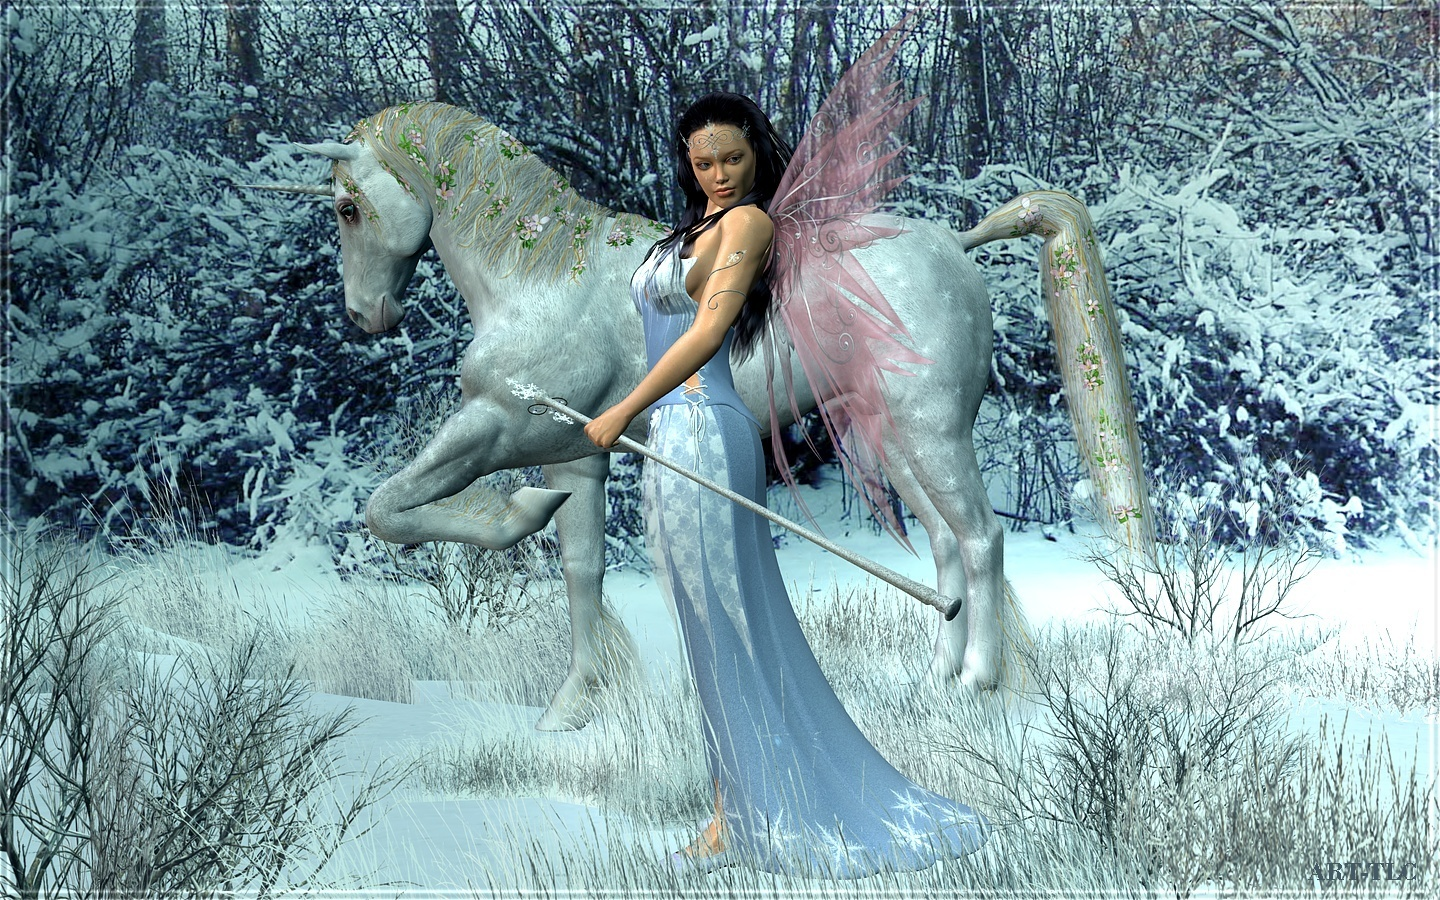 The Fairy Queen - Fantasy Wallpaper (7636280) - Fanpop